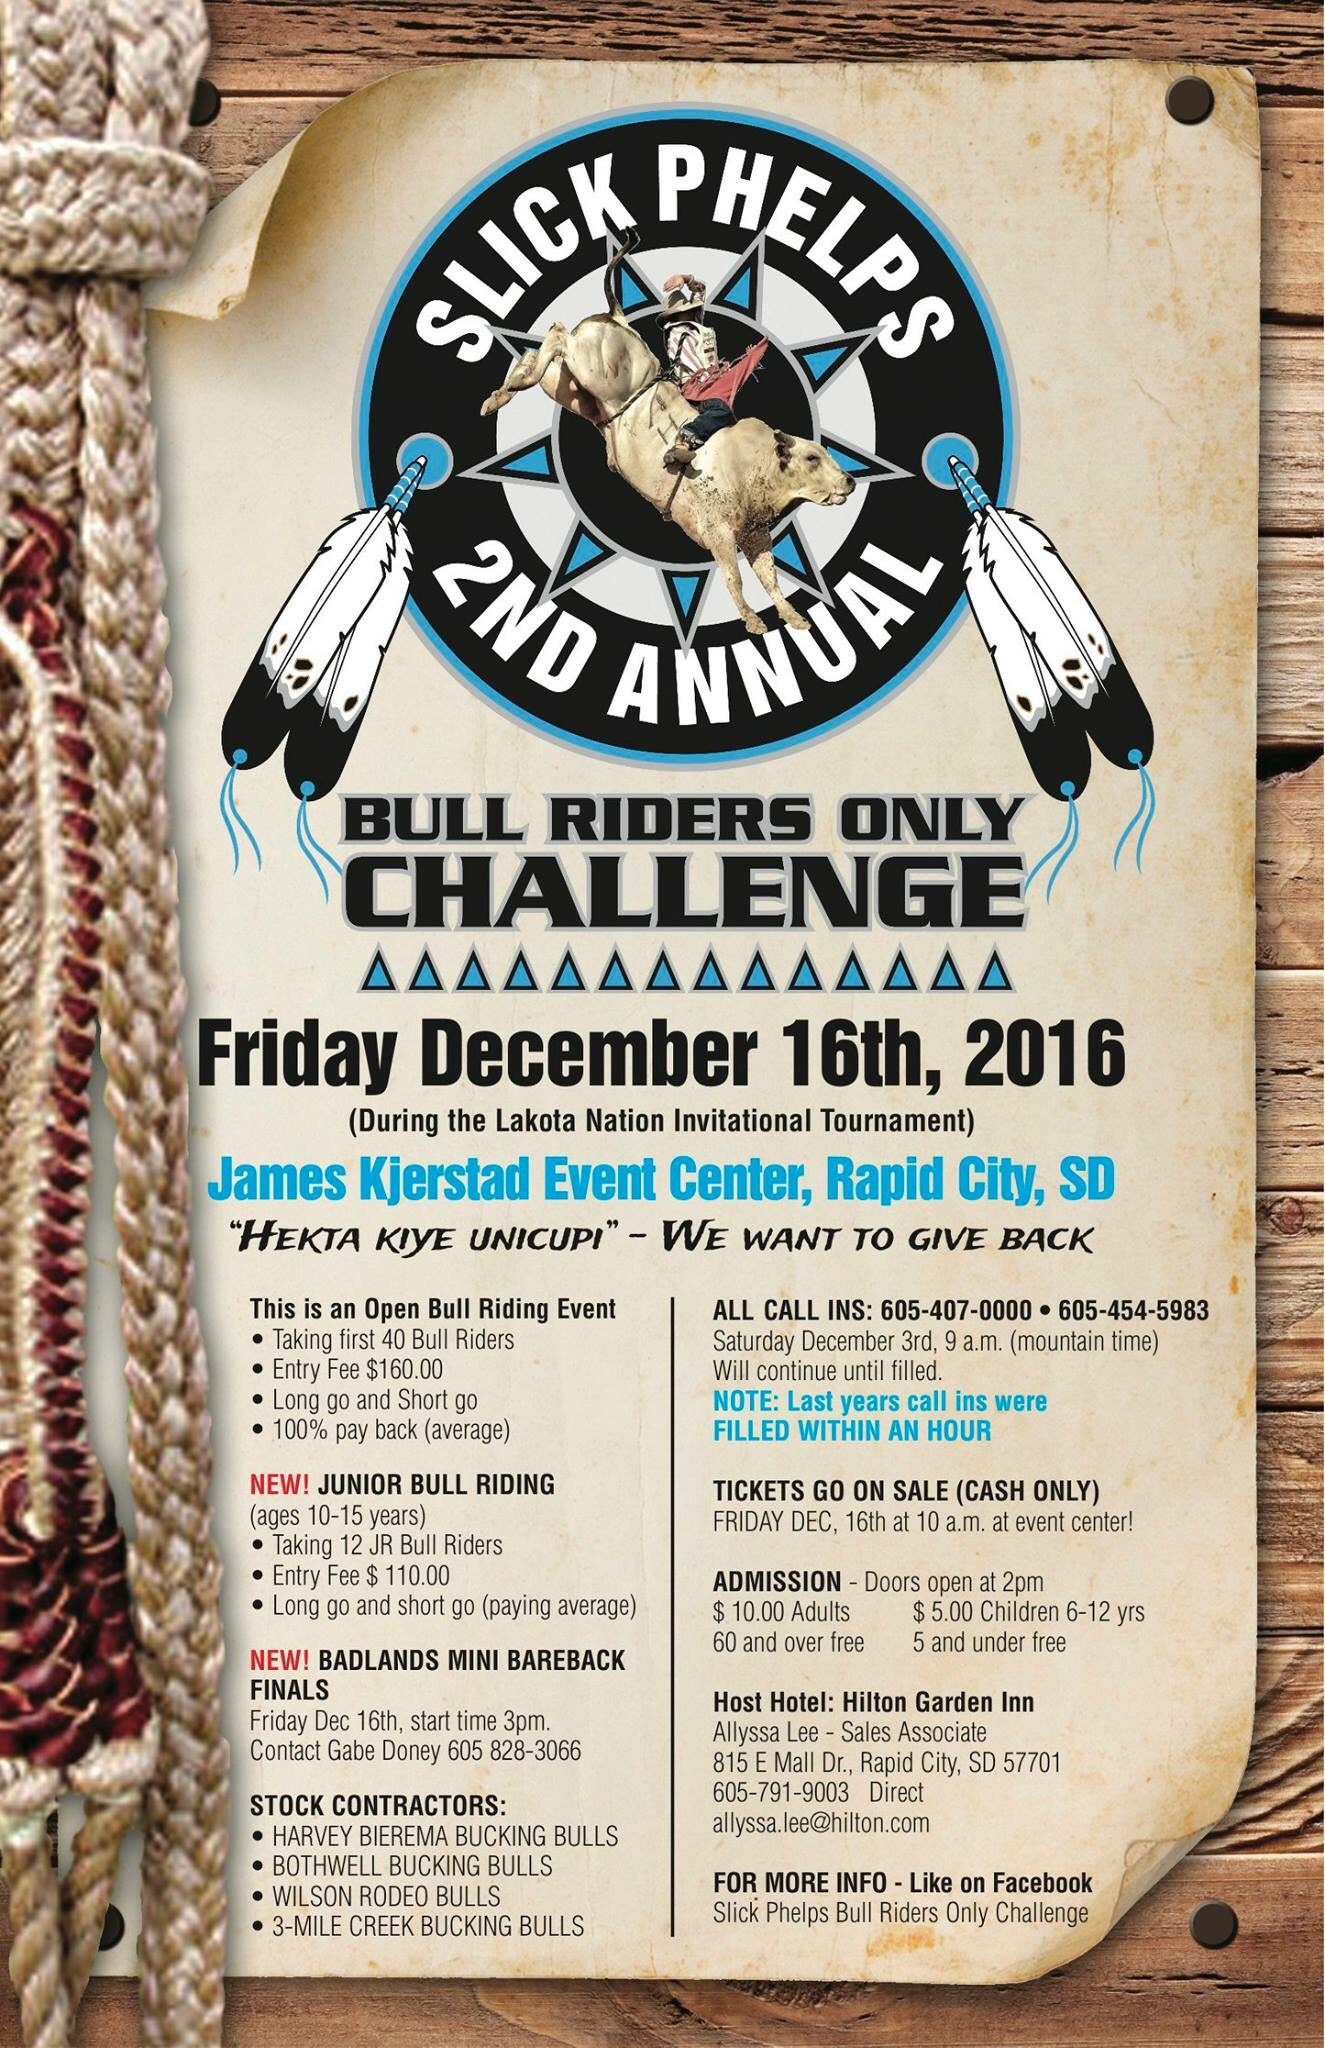 2nd Annual Slick Phelps Bull Riders Only Challenge!